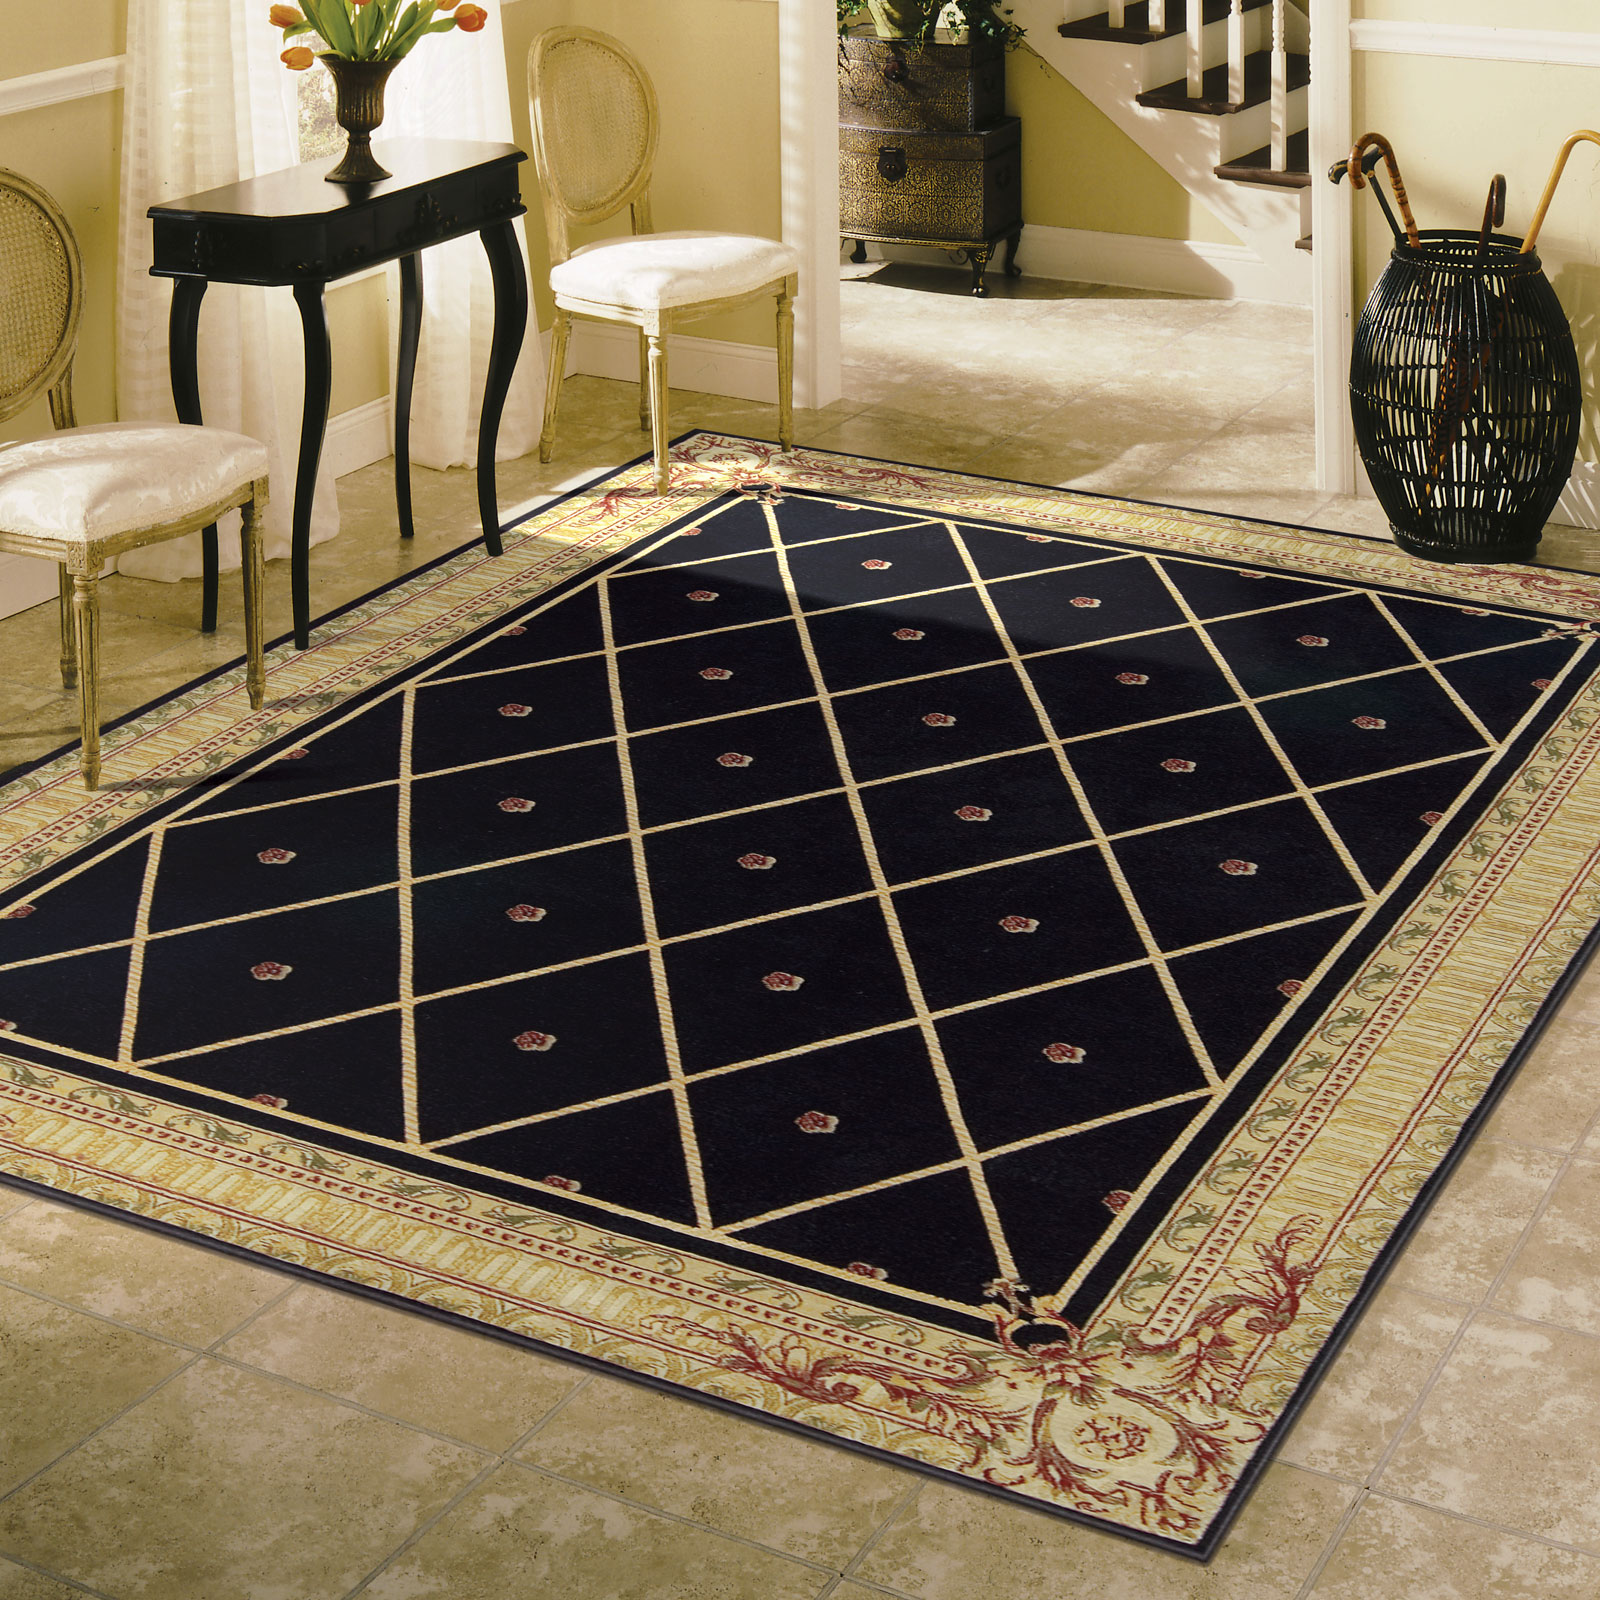 Ashton House Rugs by Nourison AS03 in Black